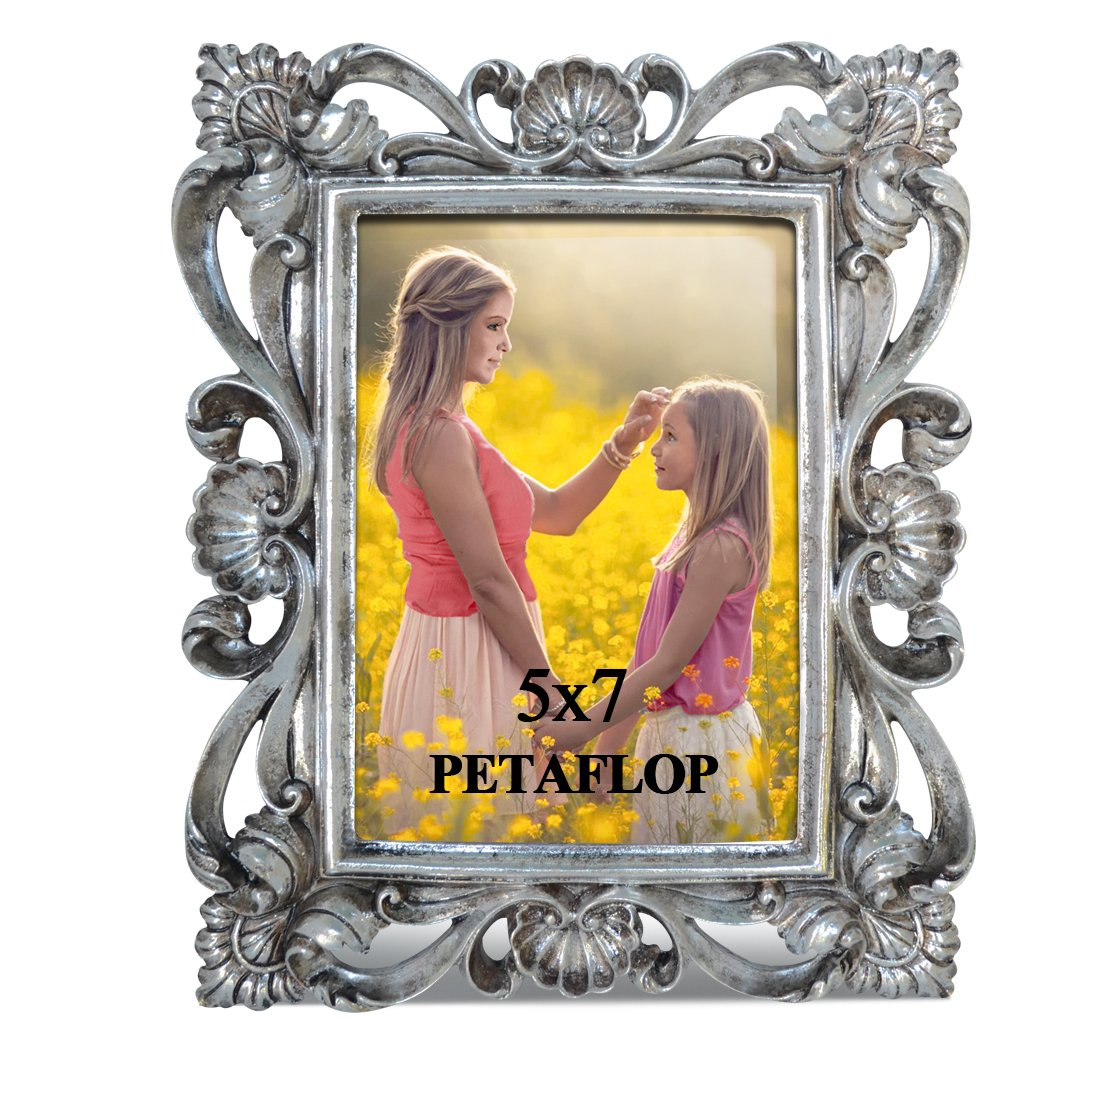 PETAFLOP 5 by 7 Creative Picture Frame with Real Glass Tabletop Display for 5x7 Photo, Silver PETAFLOPS IMP 5x7CH180310